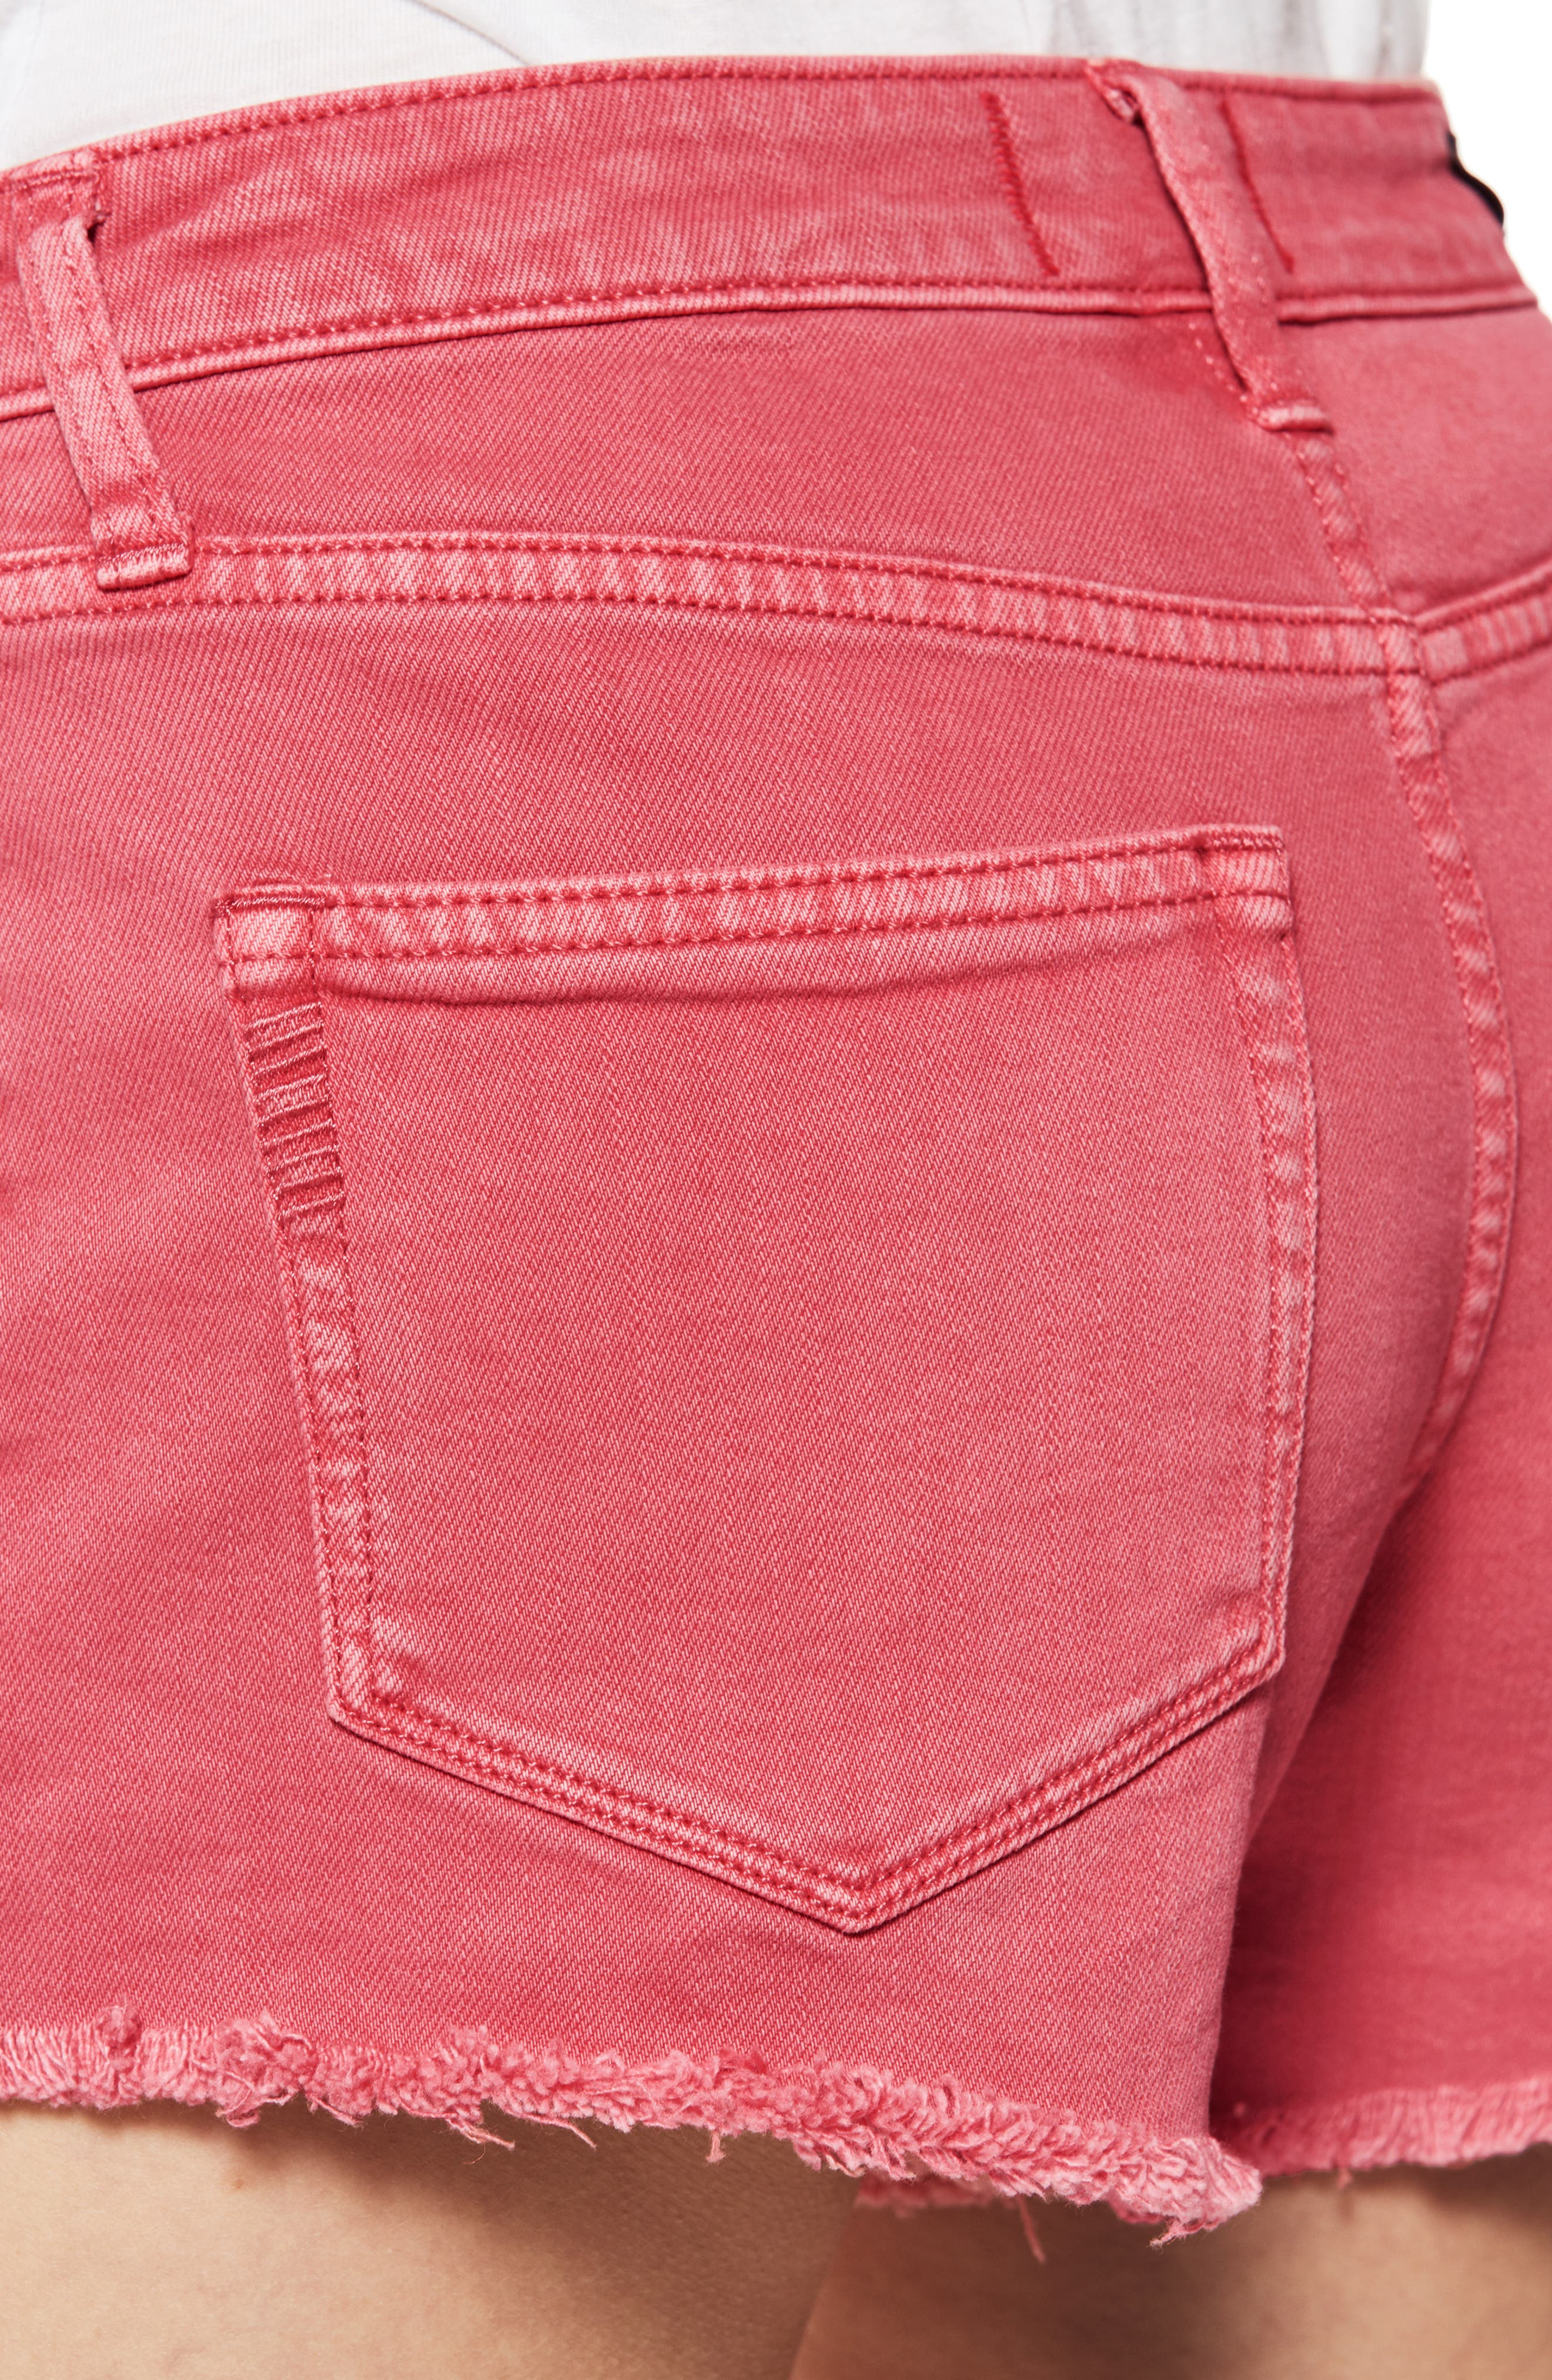 Emmit Relaxed Denim Shorts,                             Alternate thumbnail 4, color,                             601